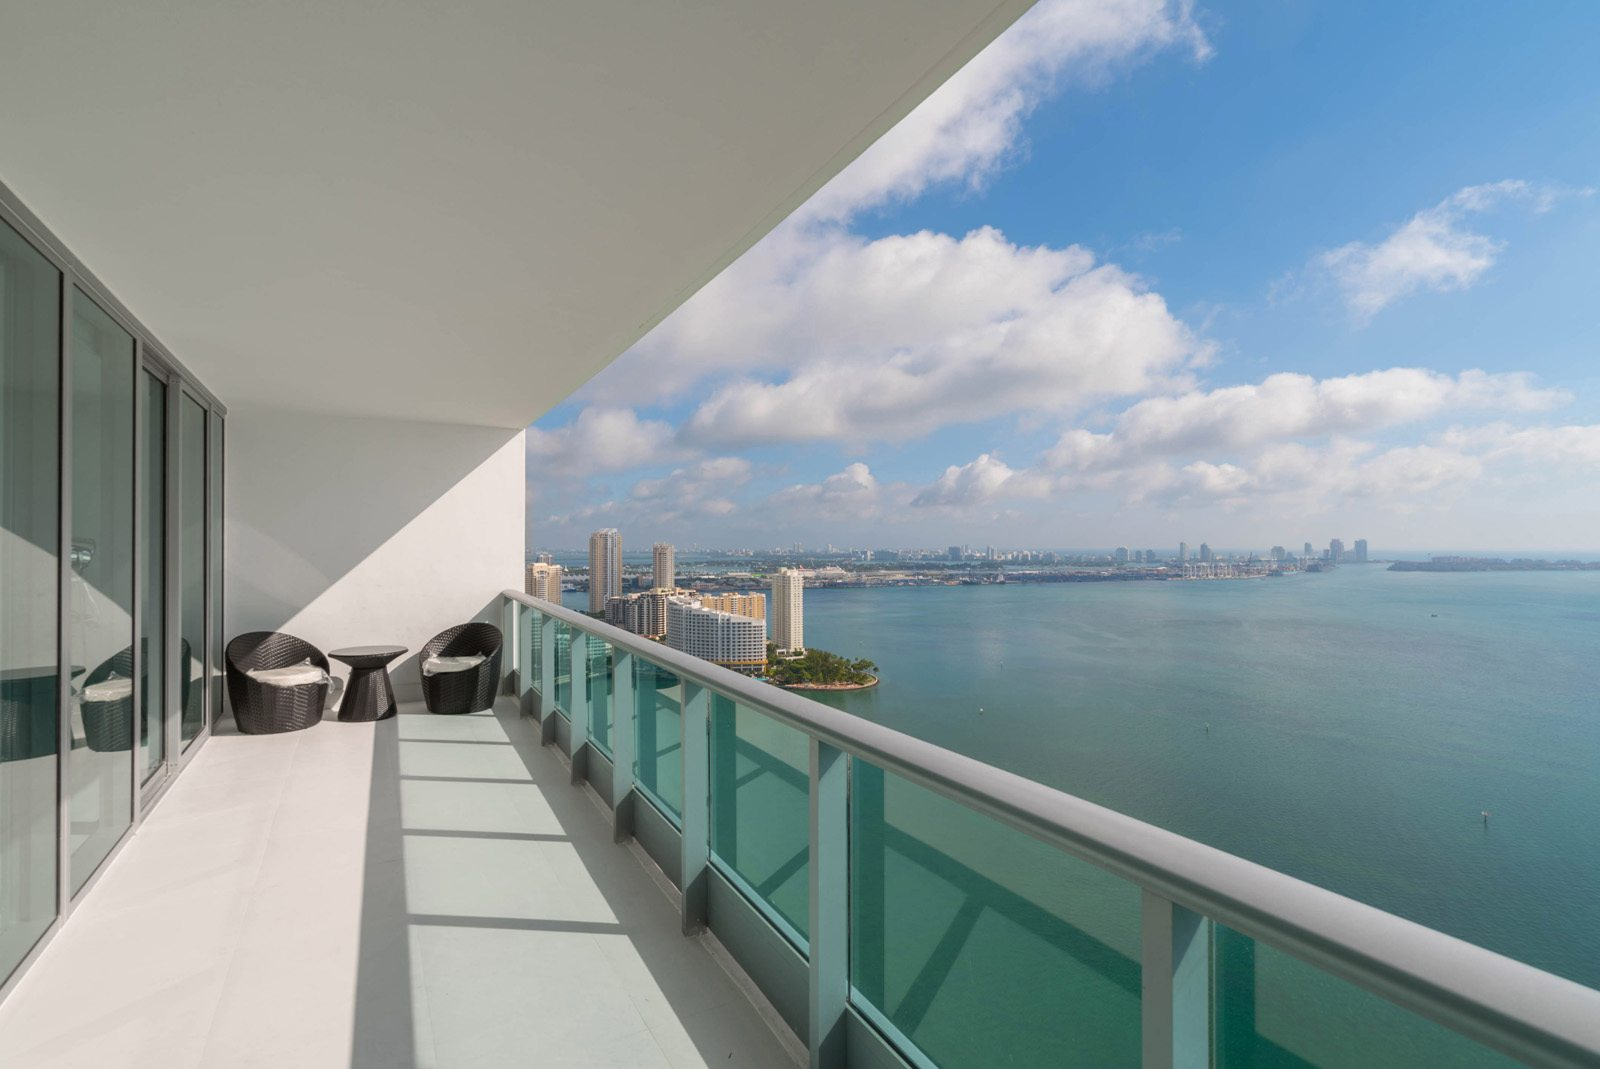 Jade at Brickell Bay view from 41st floor